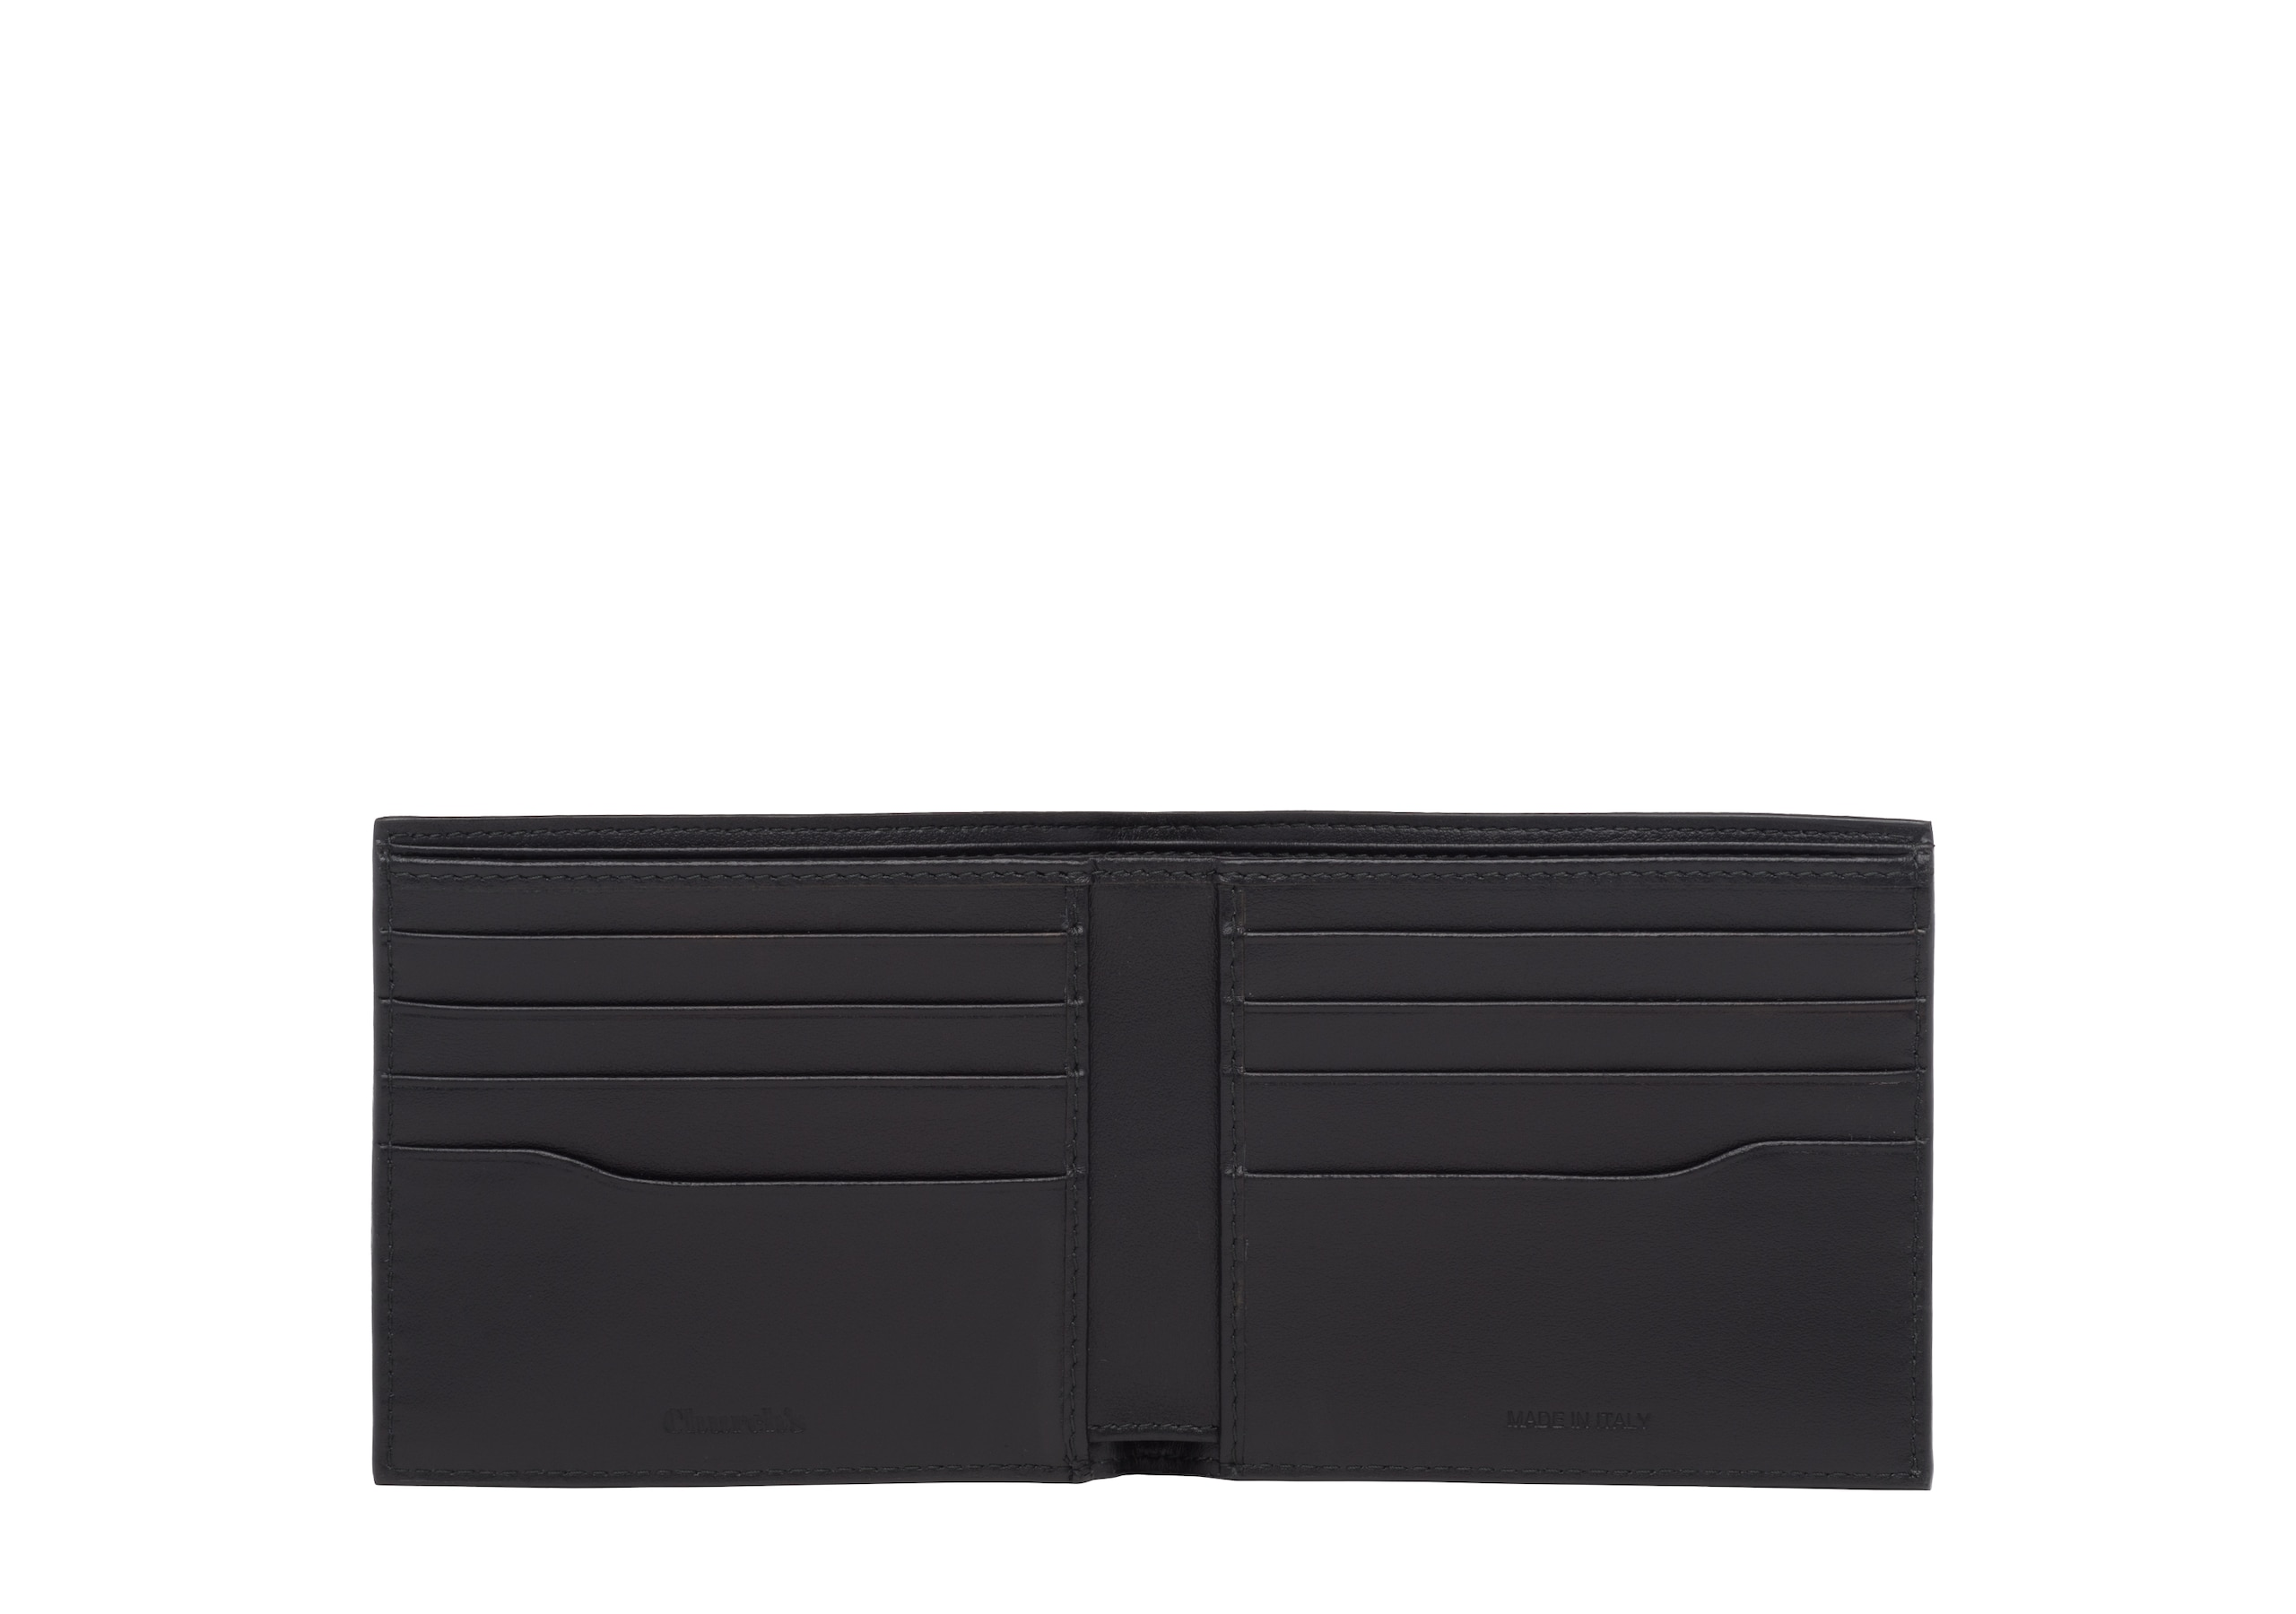 Billfold wallet Church's St James Leather 8 Card Wallet Black